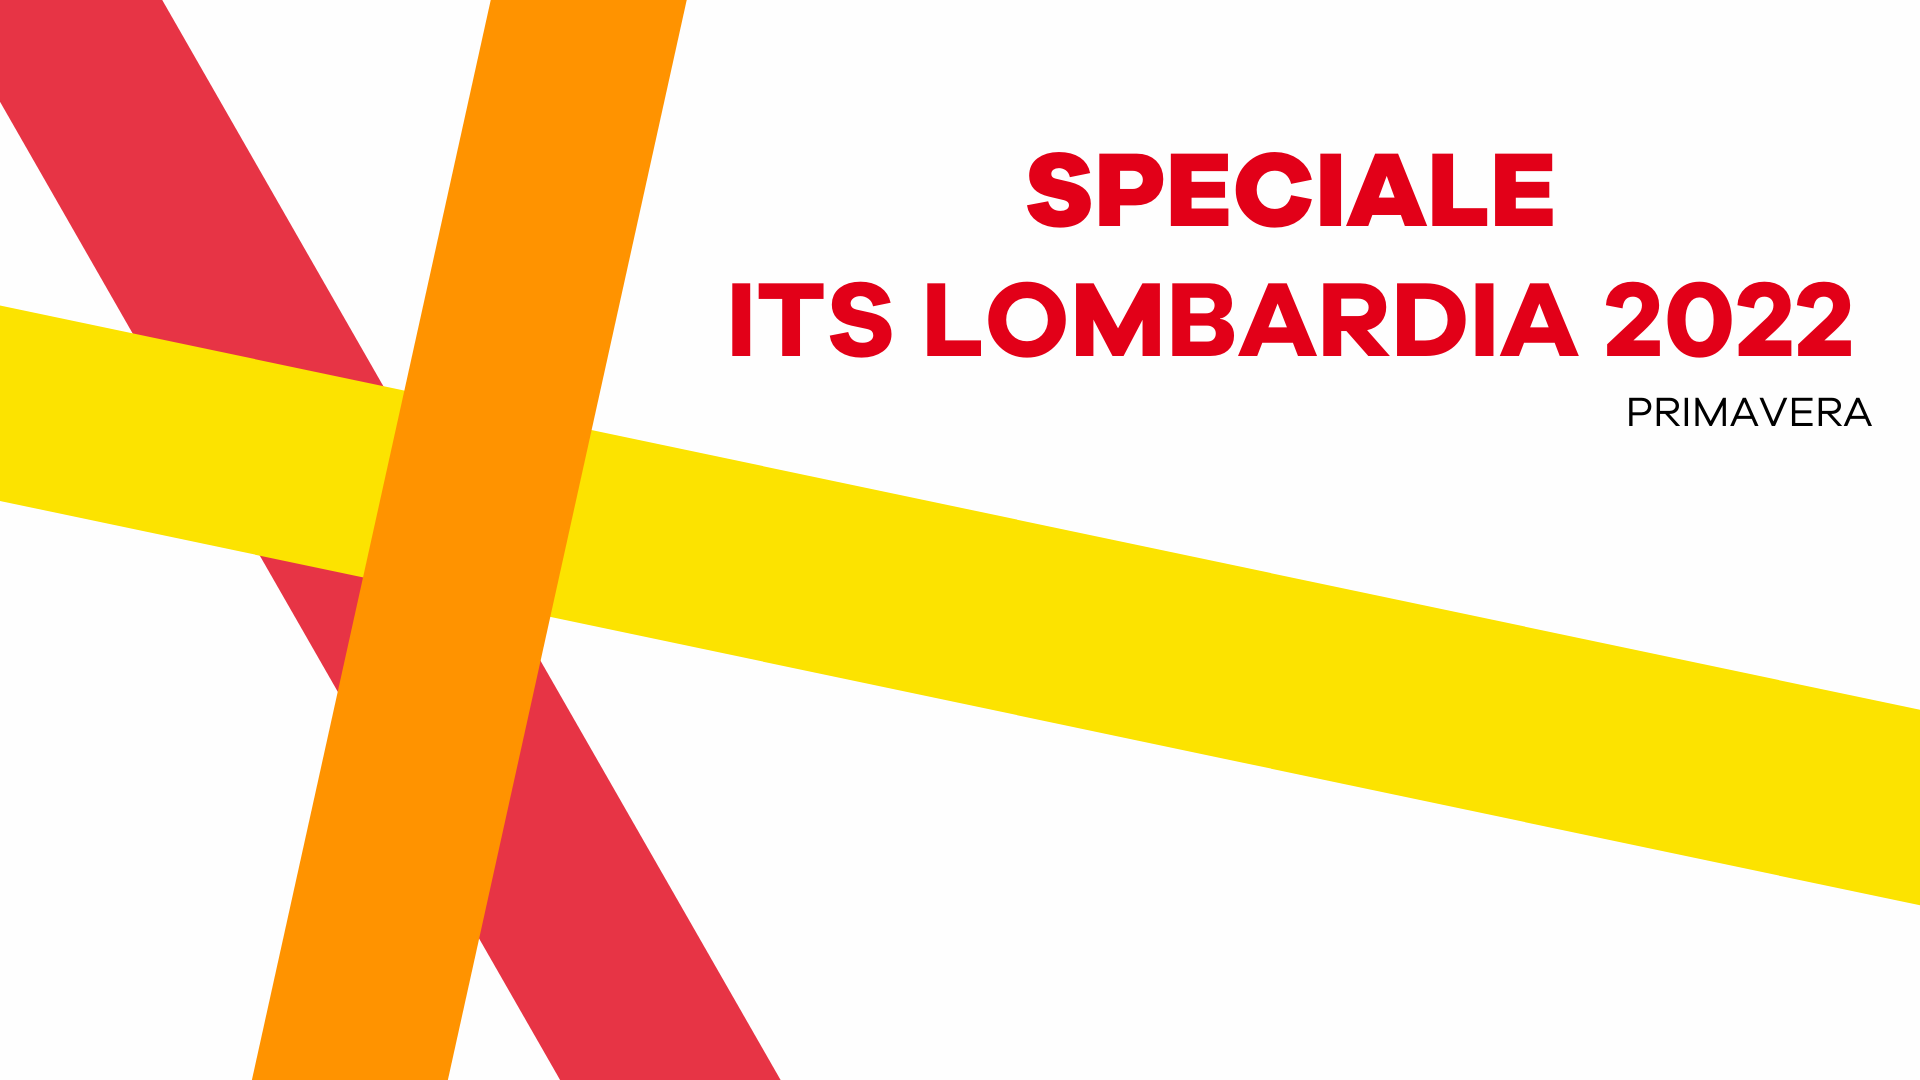 Speciale ITS Lombardia 2022 Online